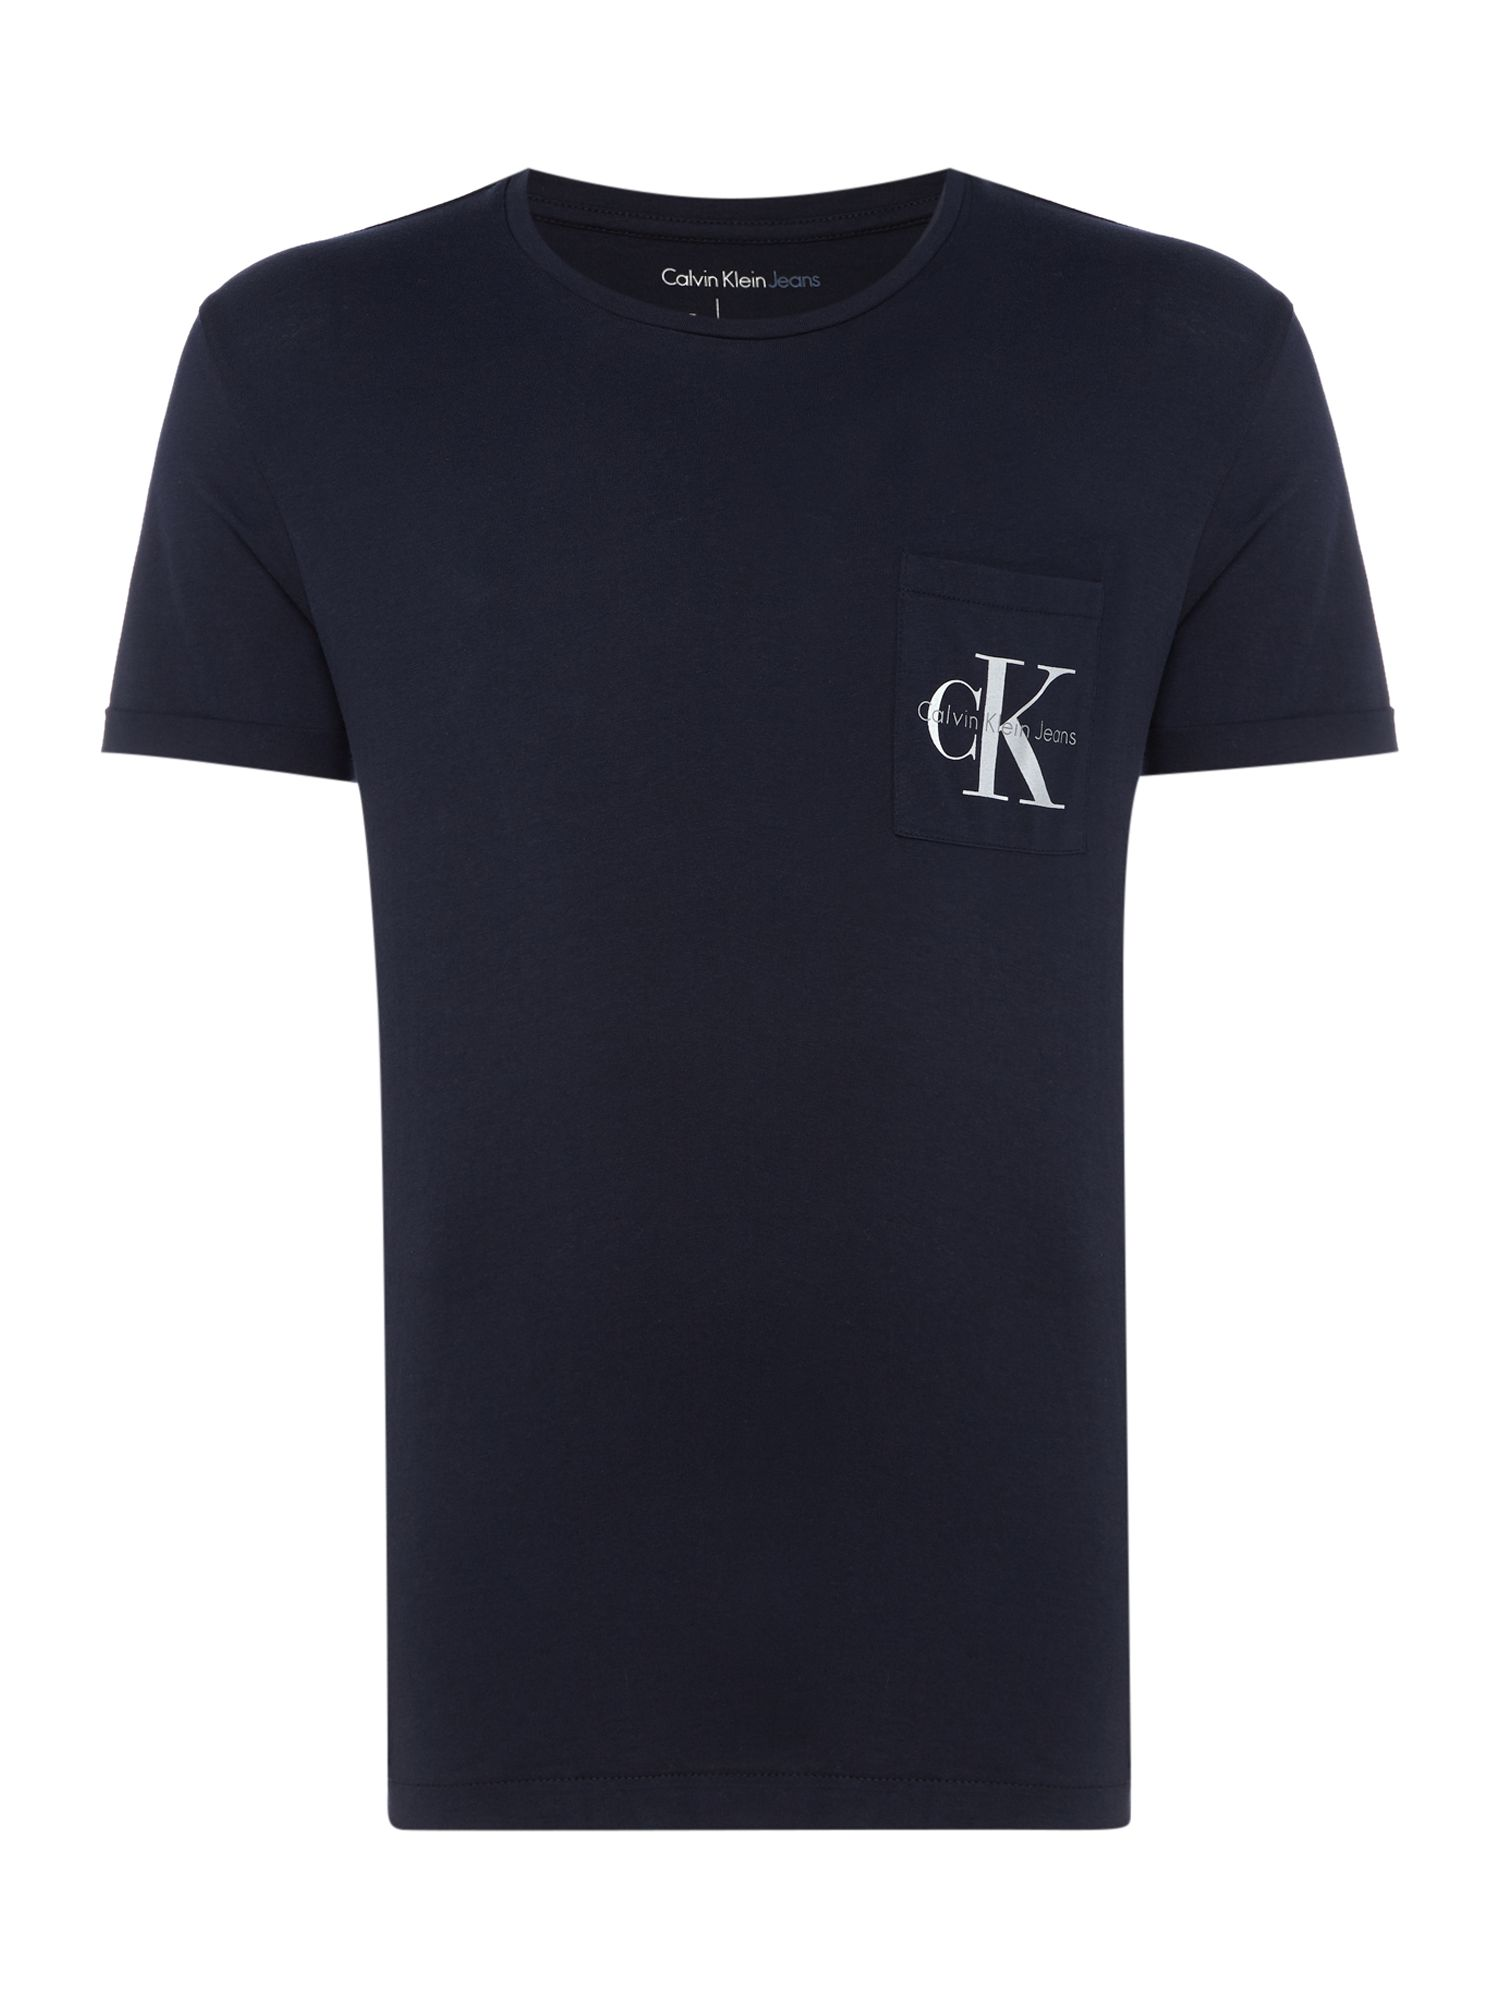 Men's Calvin Klein Bolan True Icon T-shirt, Blue